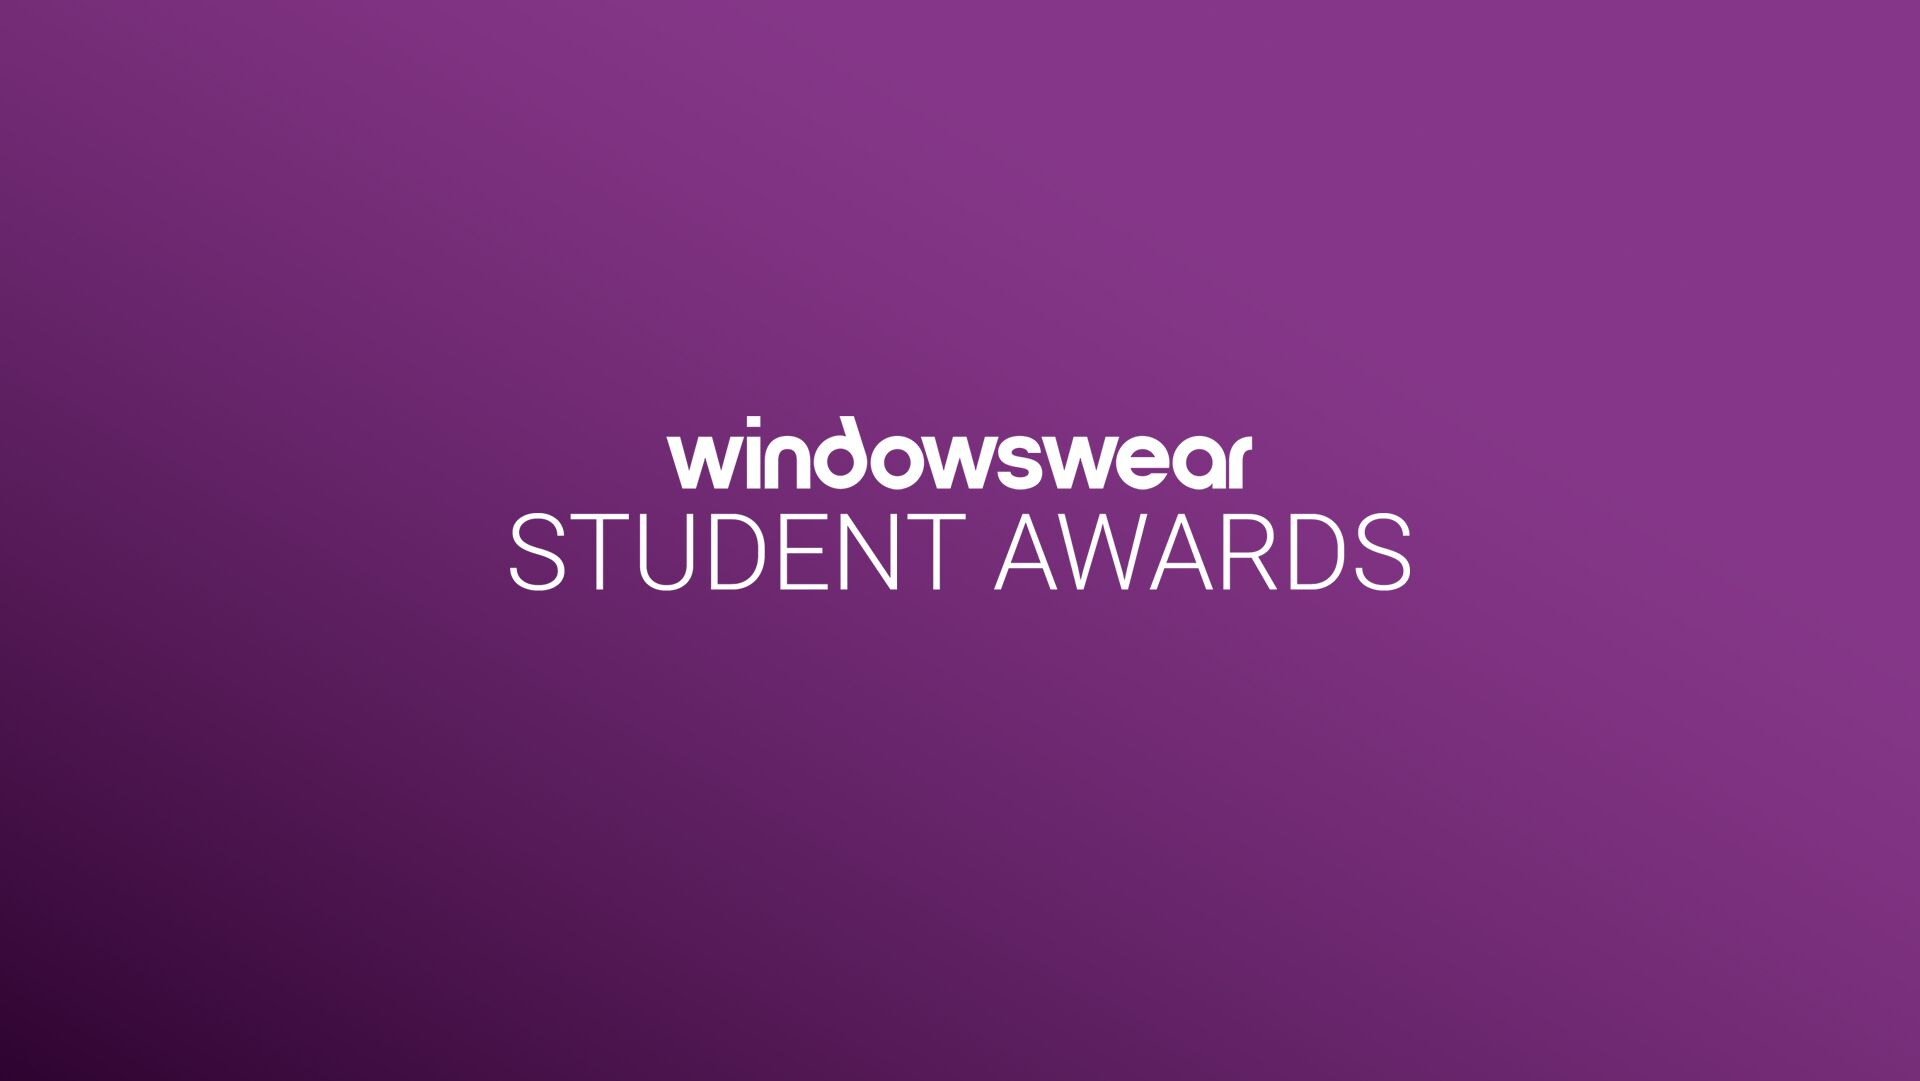 windowswear-student-awards